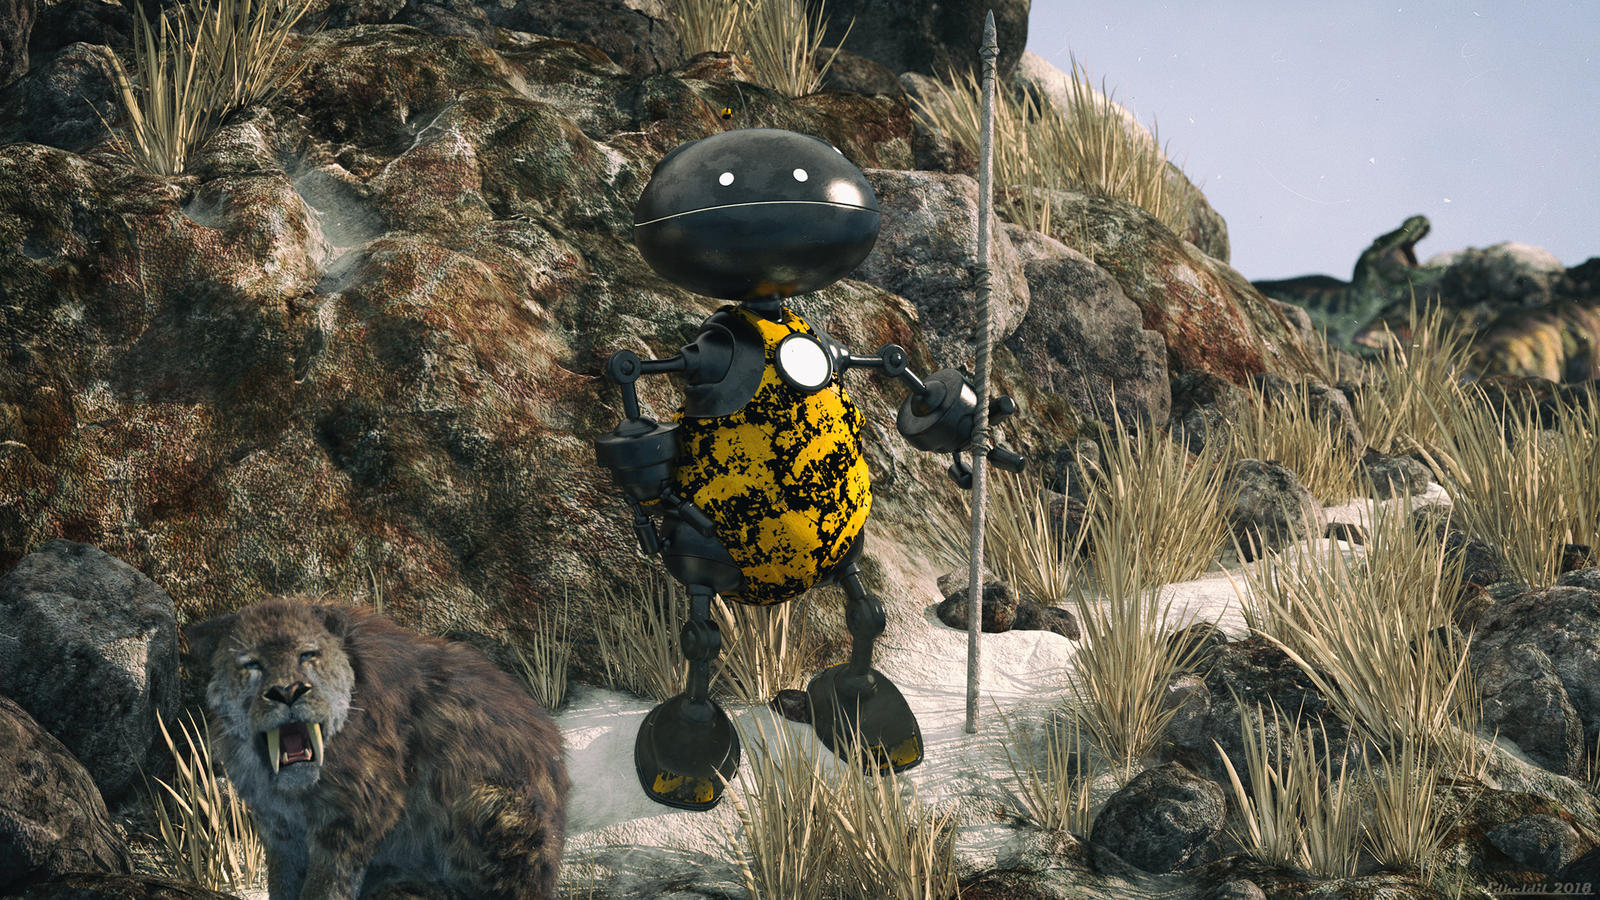 Clank - The Prehistoric Robot by Edheldil3D